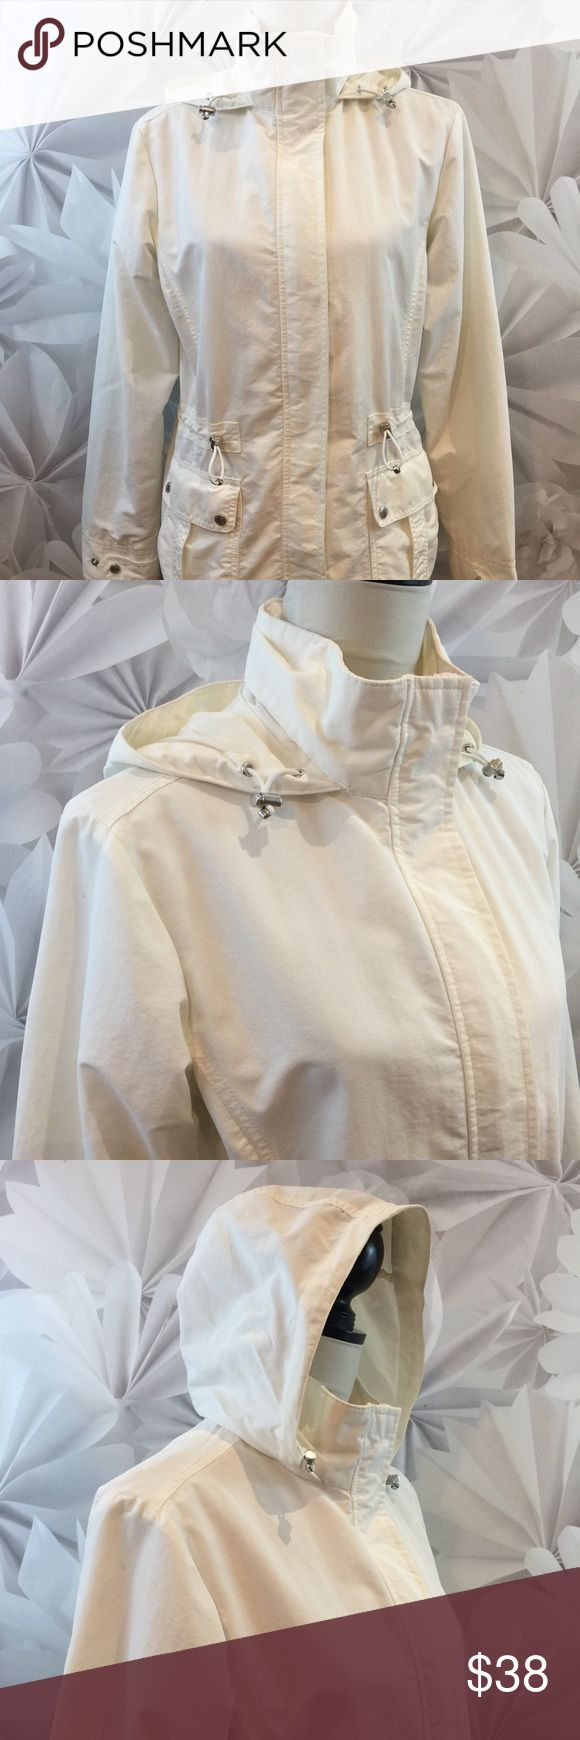 "Lands' End Women's Rain Coat Hoodie Full Zip Lands End Women's Rain Coat Pack Away Hooded Spring Full Zip Sz S Euc Lined  Bust: 41"" Length: 26 1/2"" Sleeves: 24""  We would be thrilled to combine shipping!  This garment is in excellent used condition. There are no stains, spots, pills, or signs of wear. This item comes from a smoke free pet free environment. Please follow us on our store and never miss another sale! Lands' End Jackets & Coats"